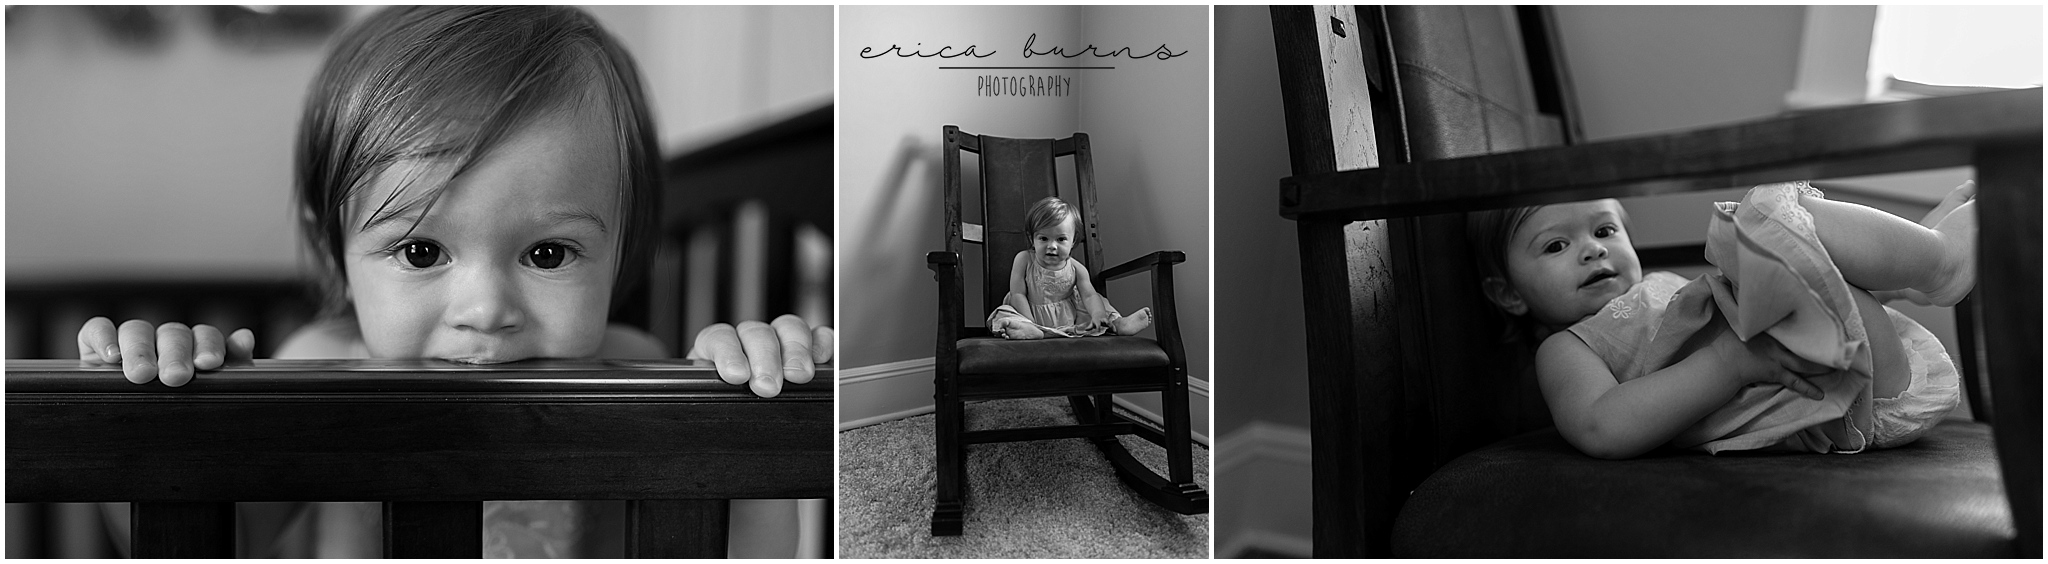 Erica Burns Photography | Long Island Photographer_0194.jpg